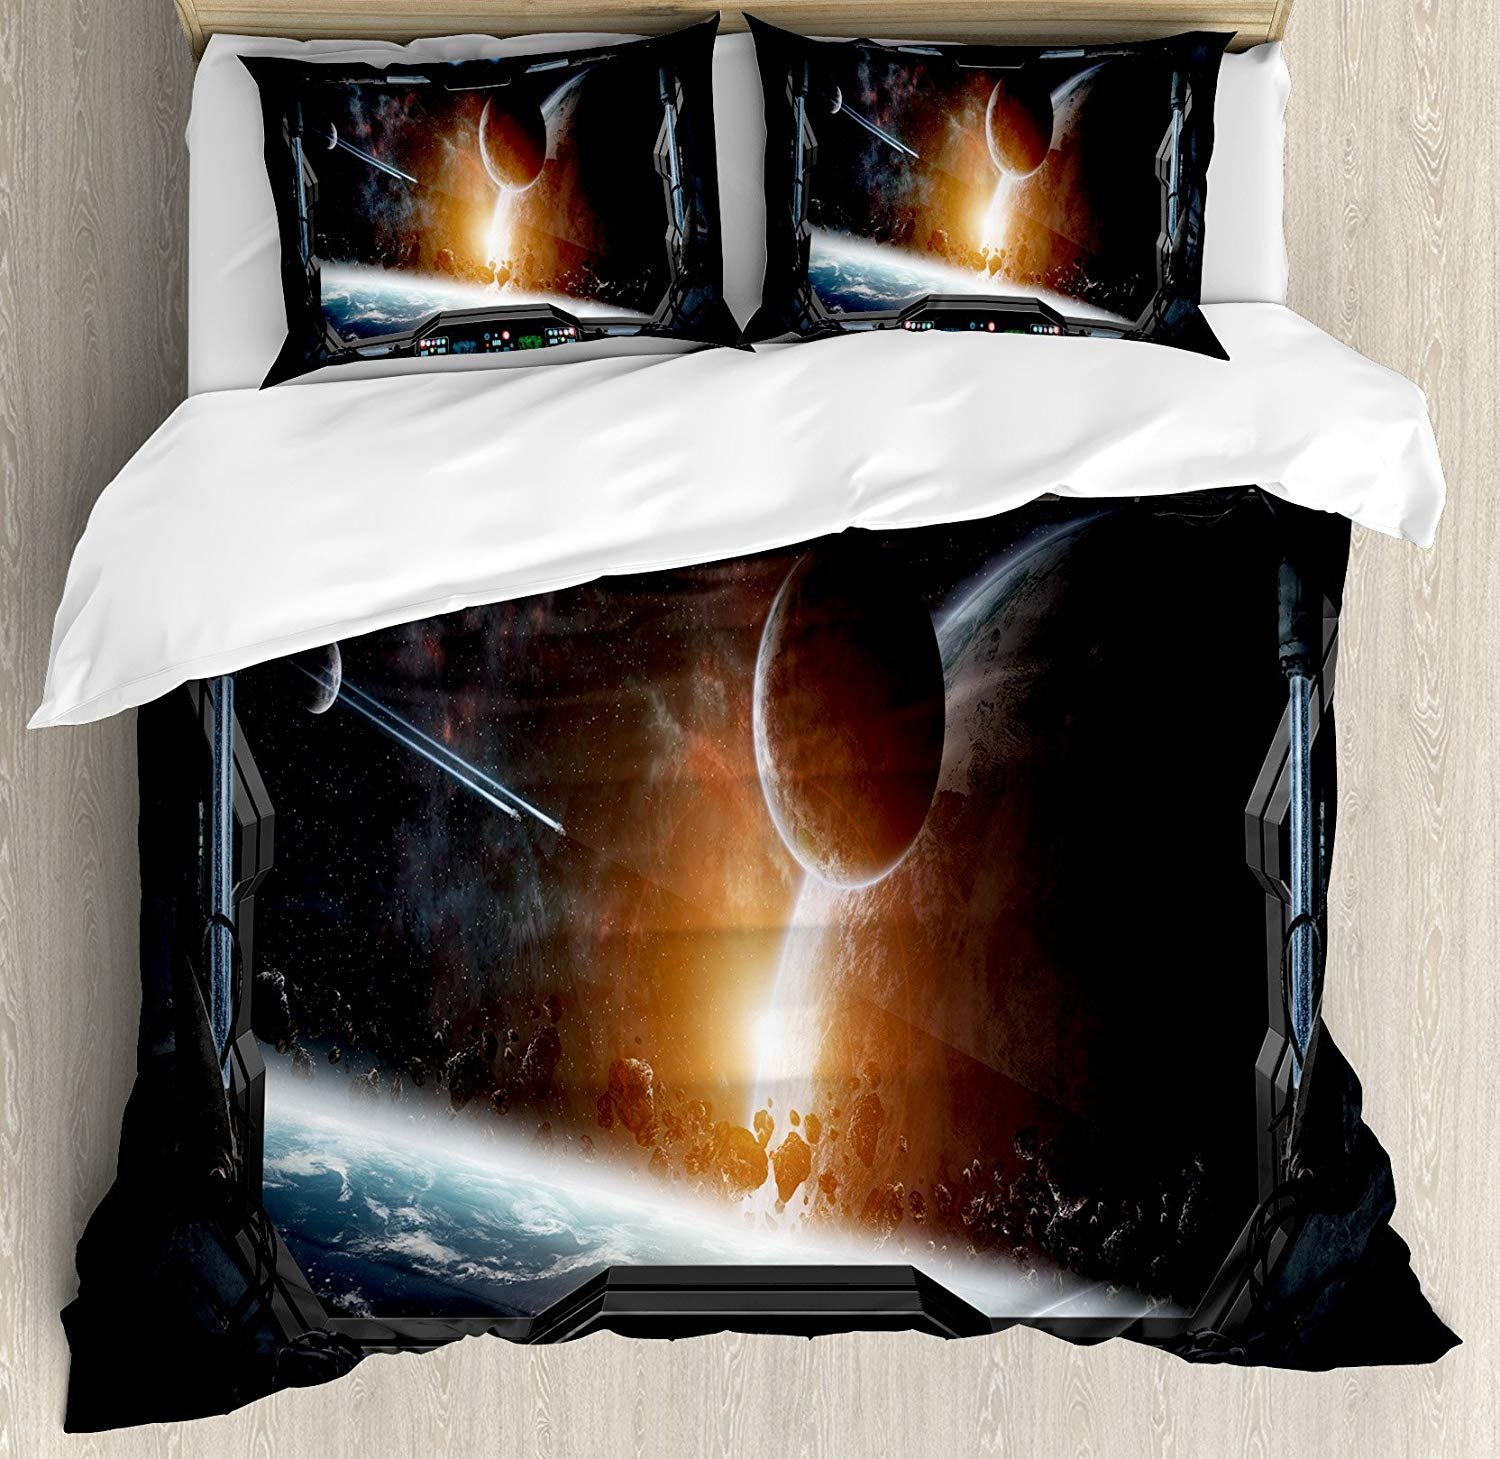 LALADecor Outer Space 4 Pieces Duvet Cover Twin Bedding Set (1 Duvet Cover+1 Flat Sheet+2 Pillow Shams) Scenery of Planets from The Window of a Shuttle Bodies Astronaut Space Station Gray Orange